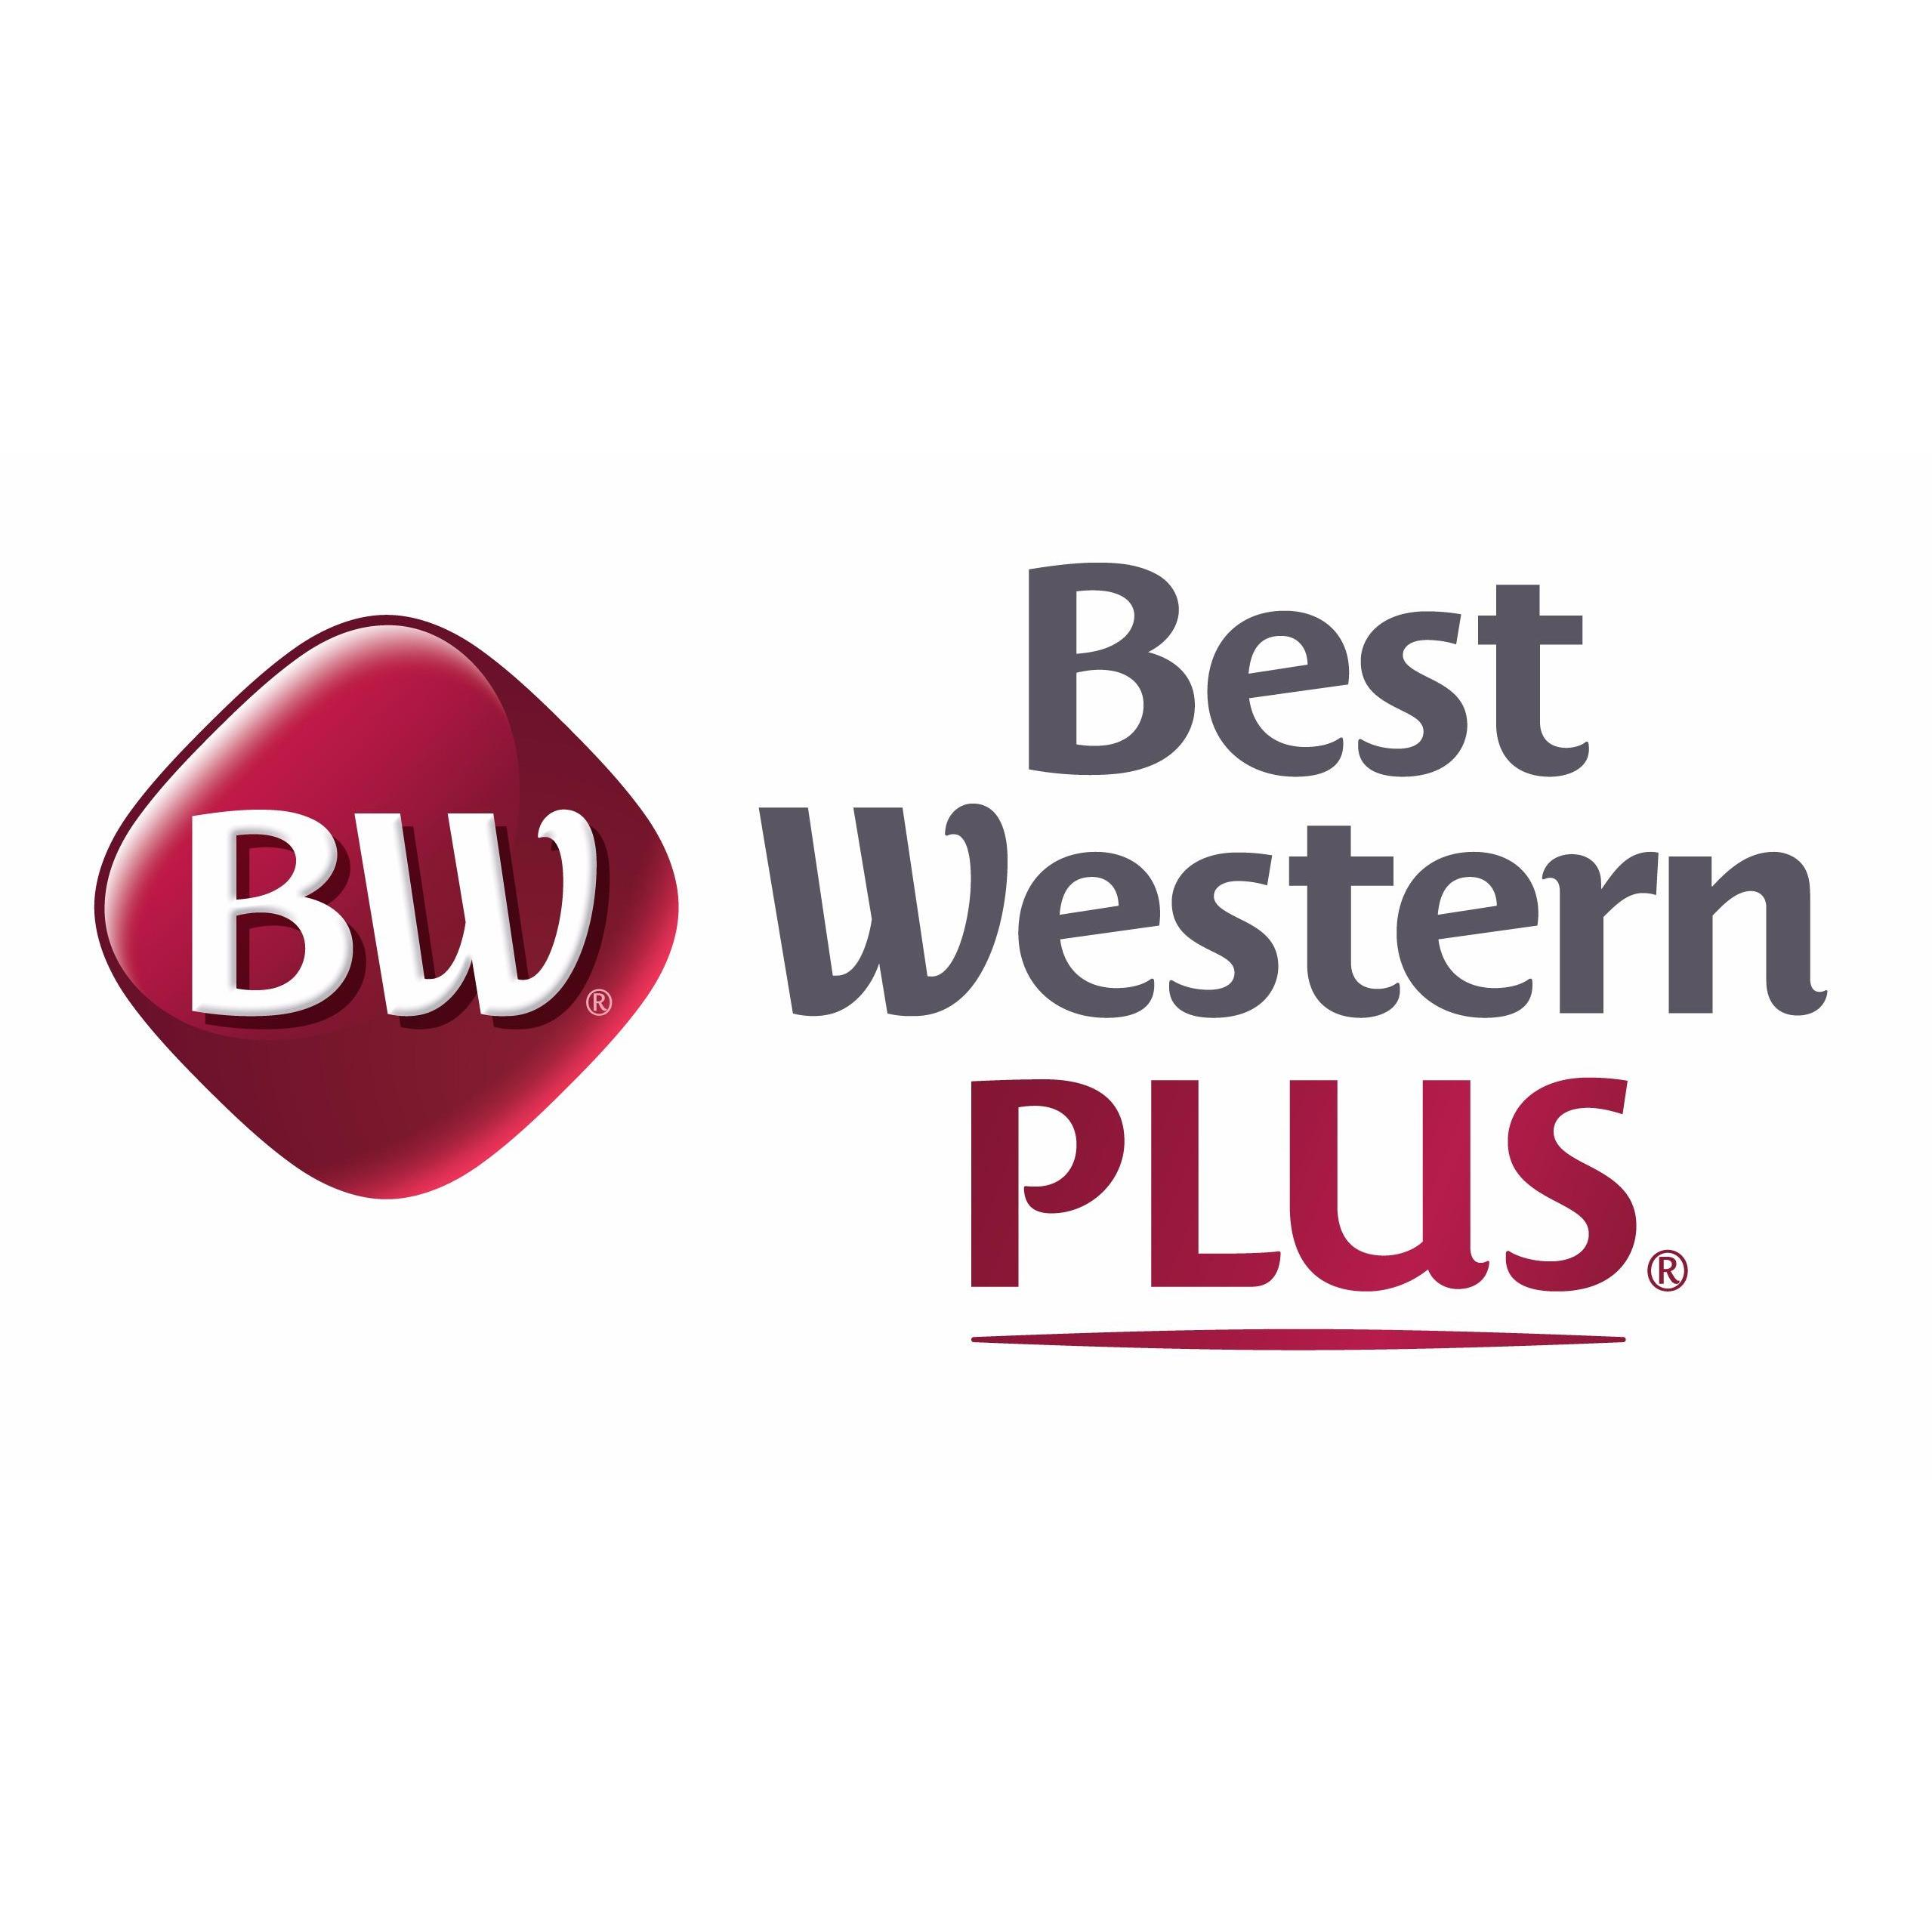 Best Western Plus Chateau Granville Hotel & Suites & Conference Ctr.